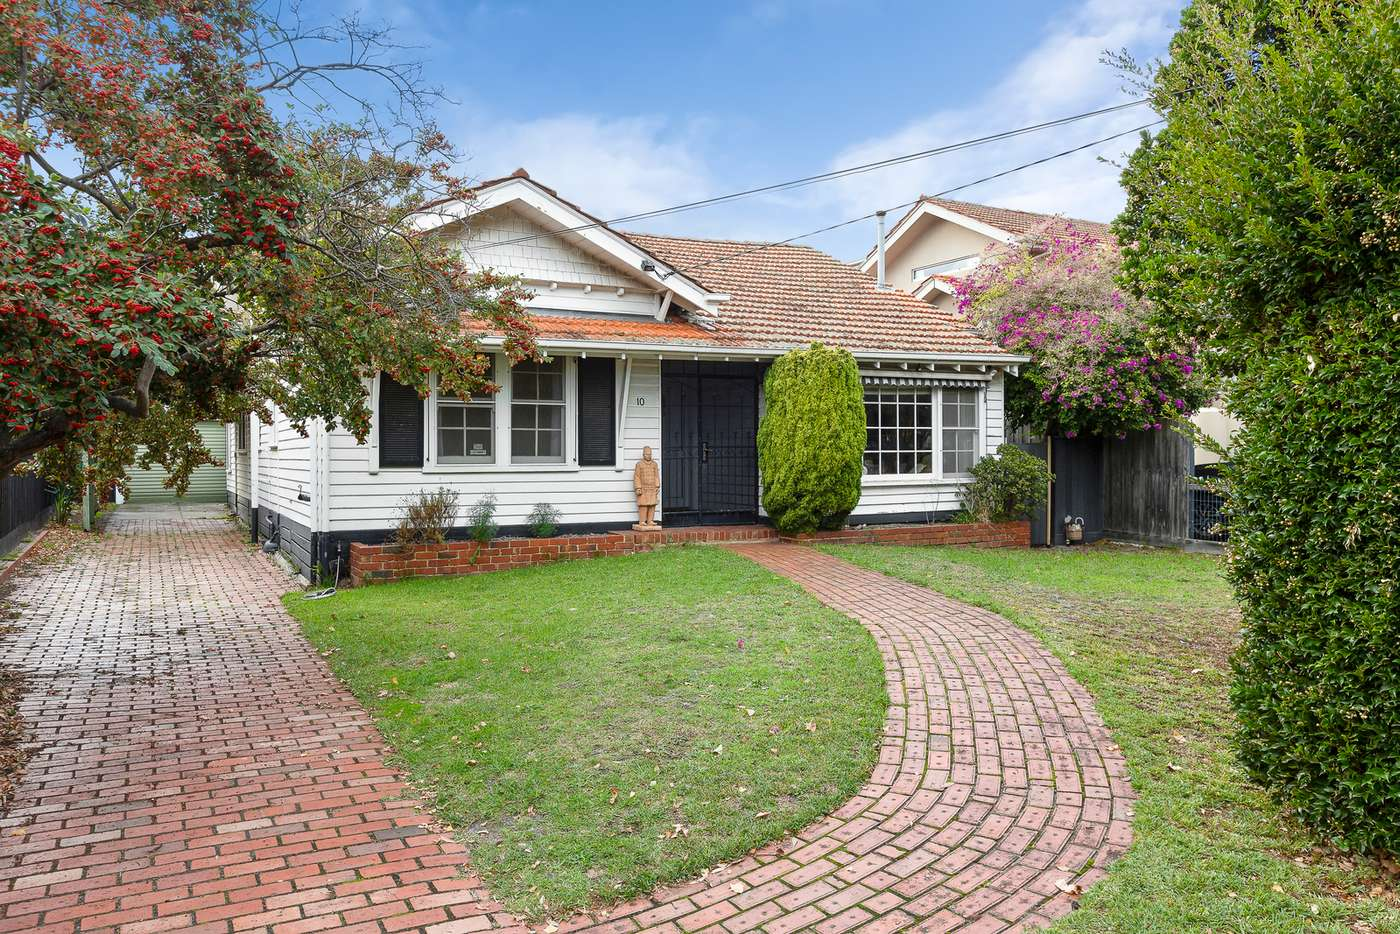 Main view of Homely house listing, 10 Imbros Street, Hampton VIC 3188